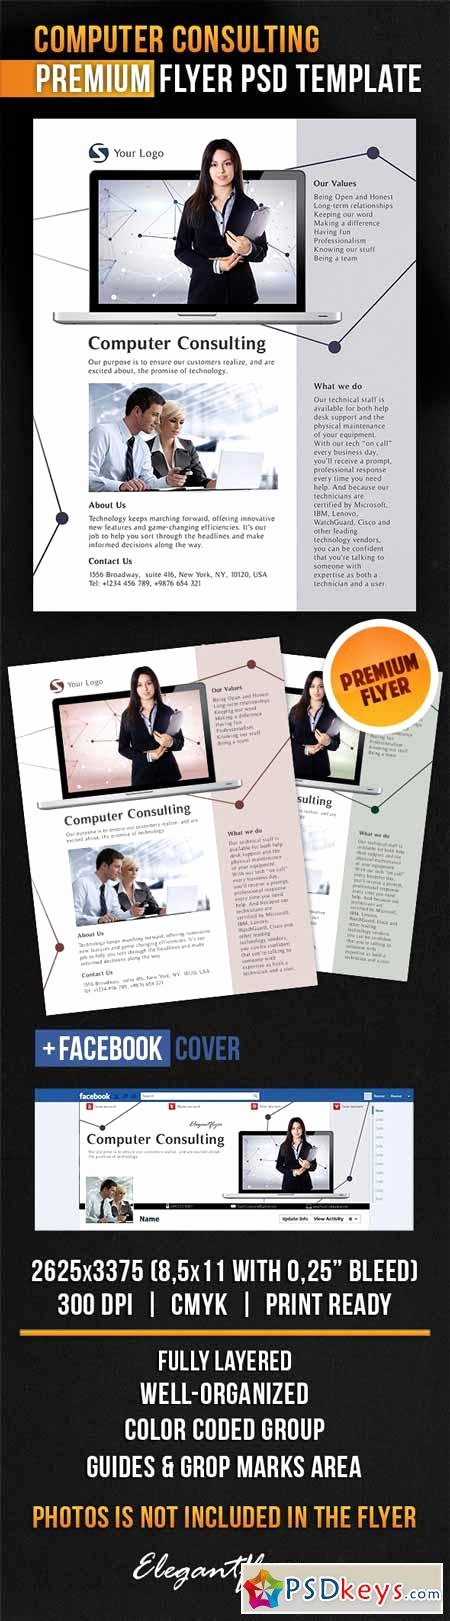 Facebook Ad Template Psd Beautiful Puter Consulting – Flyer Psd Template Cover